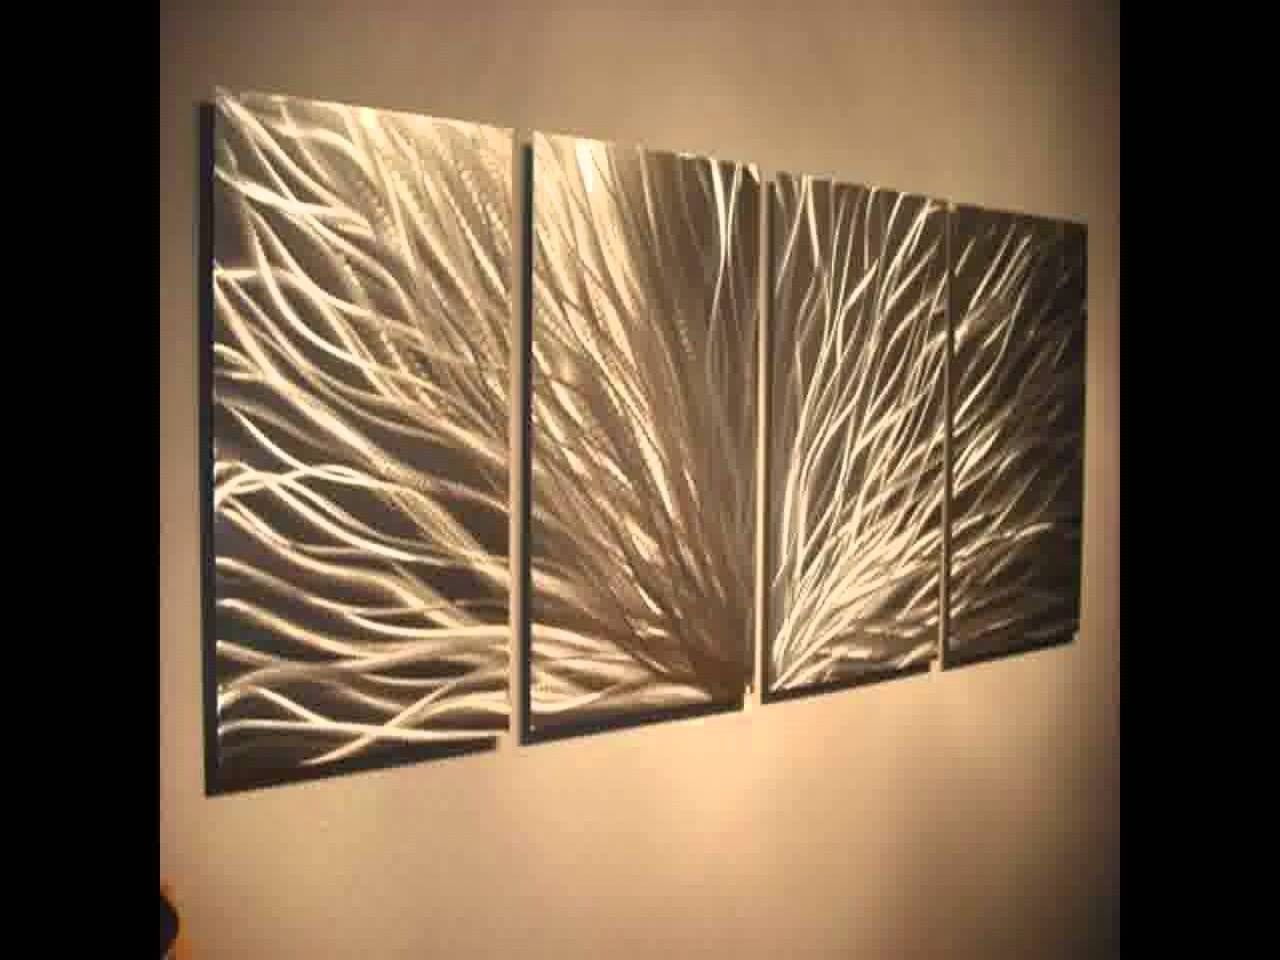 Wall Art For Men With Most Current Wall Art For Men Design Ideas – Youtube (Gallery 12 of 15)